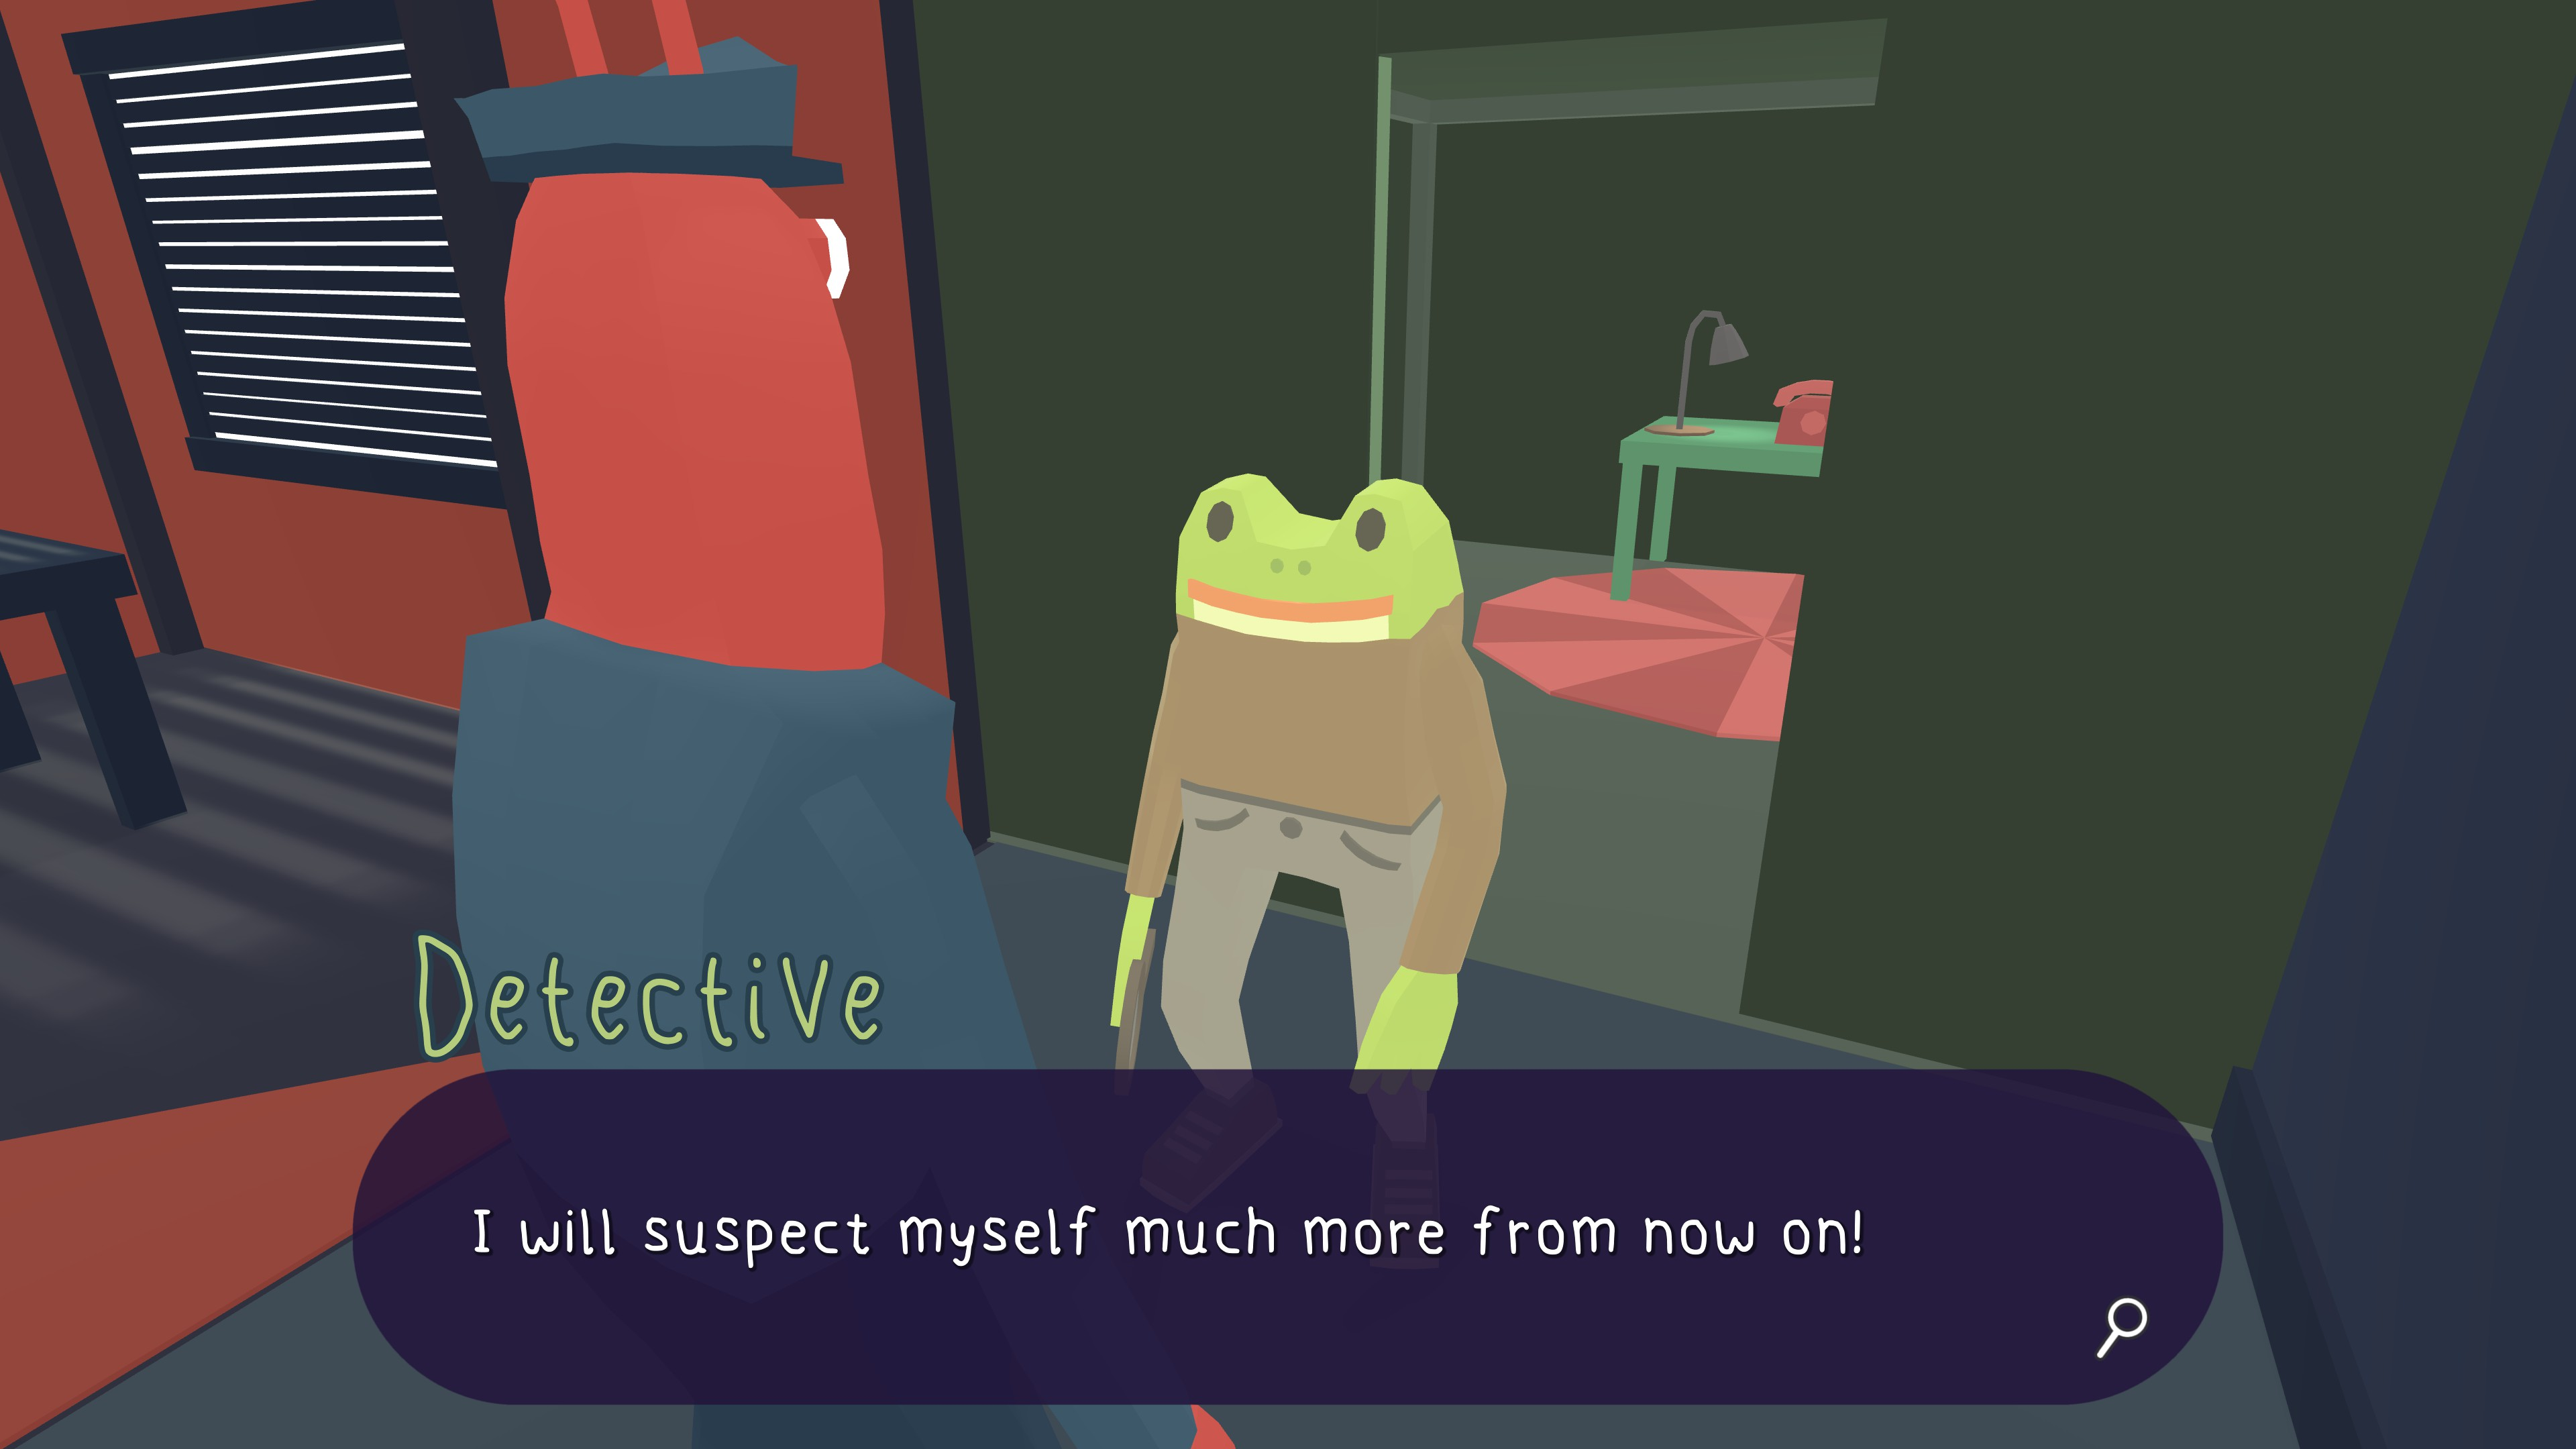 Frog Detective 2  The Case of the Invisible Wizard. The detective saying I will suspect myself much more from now on